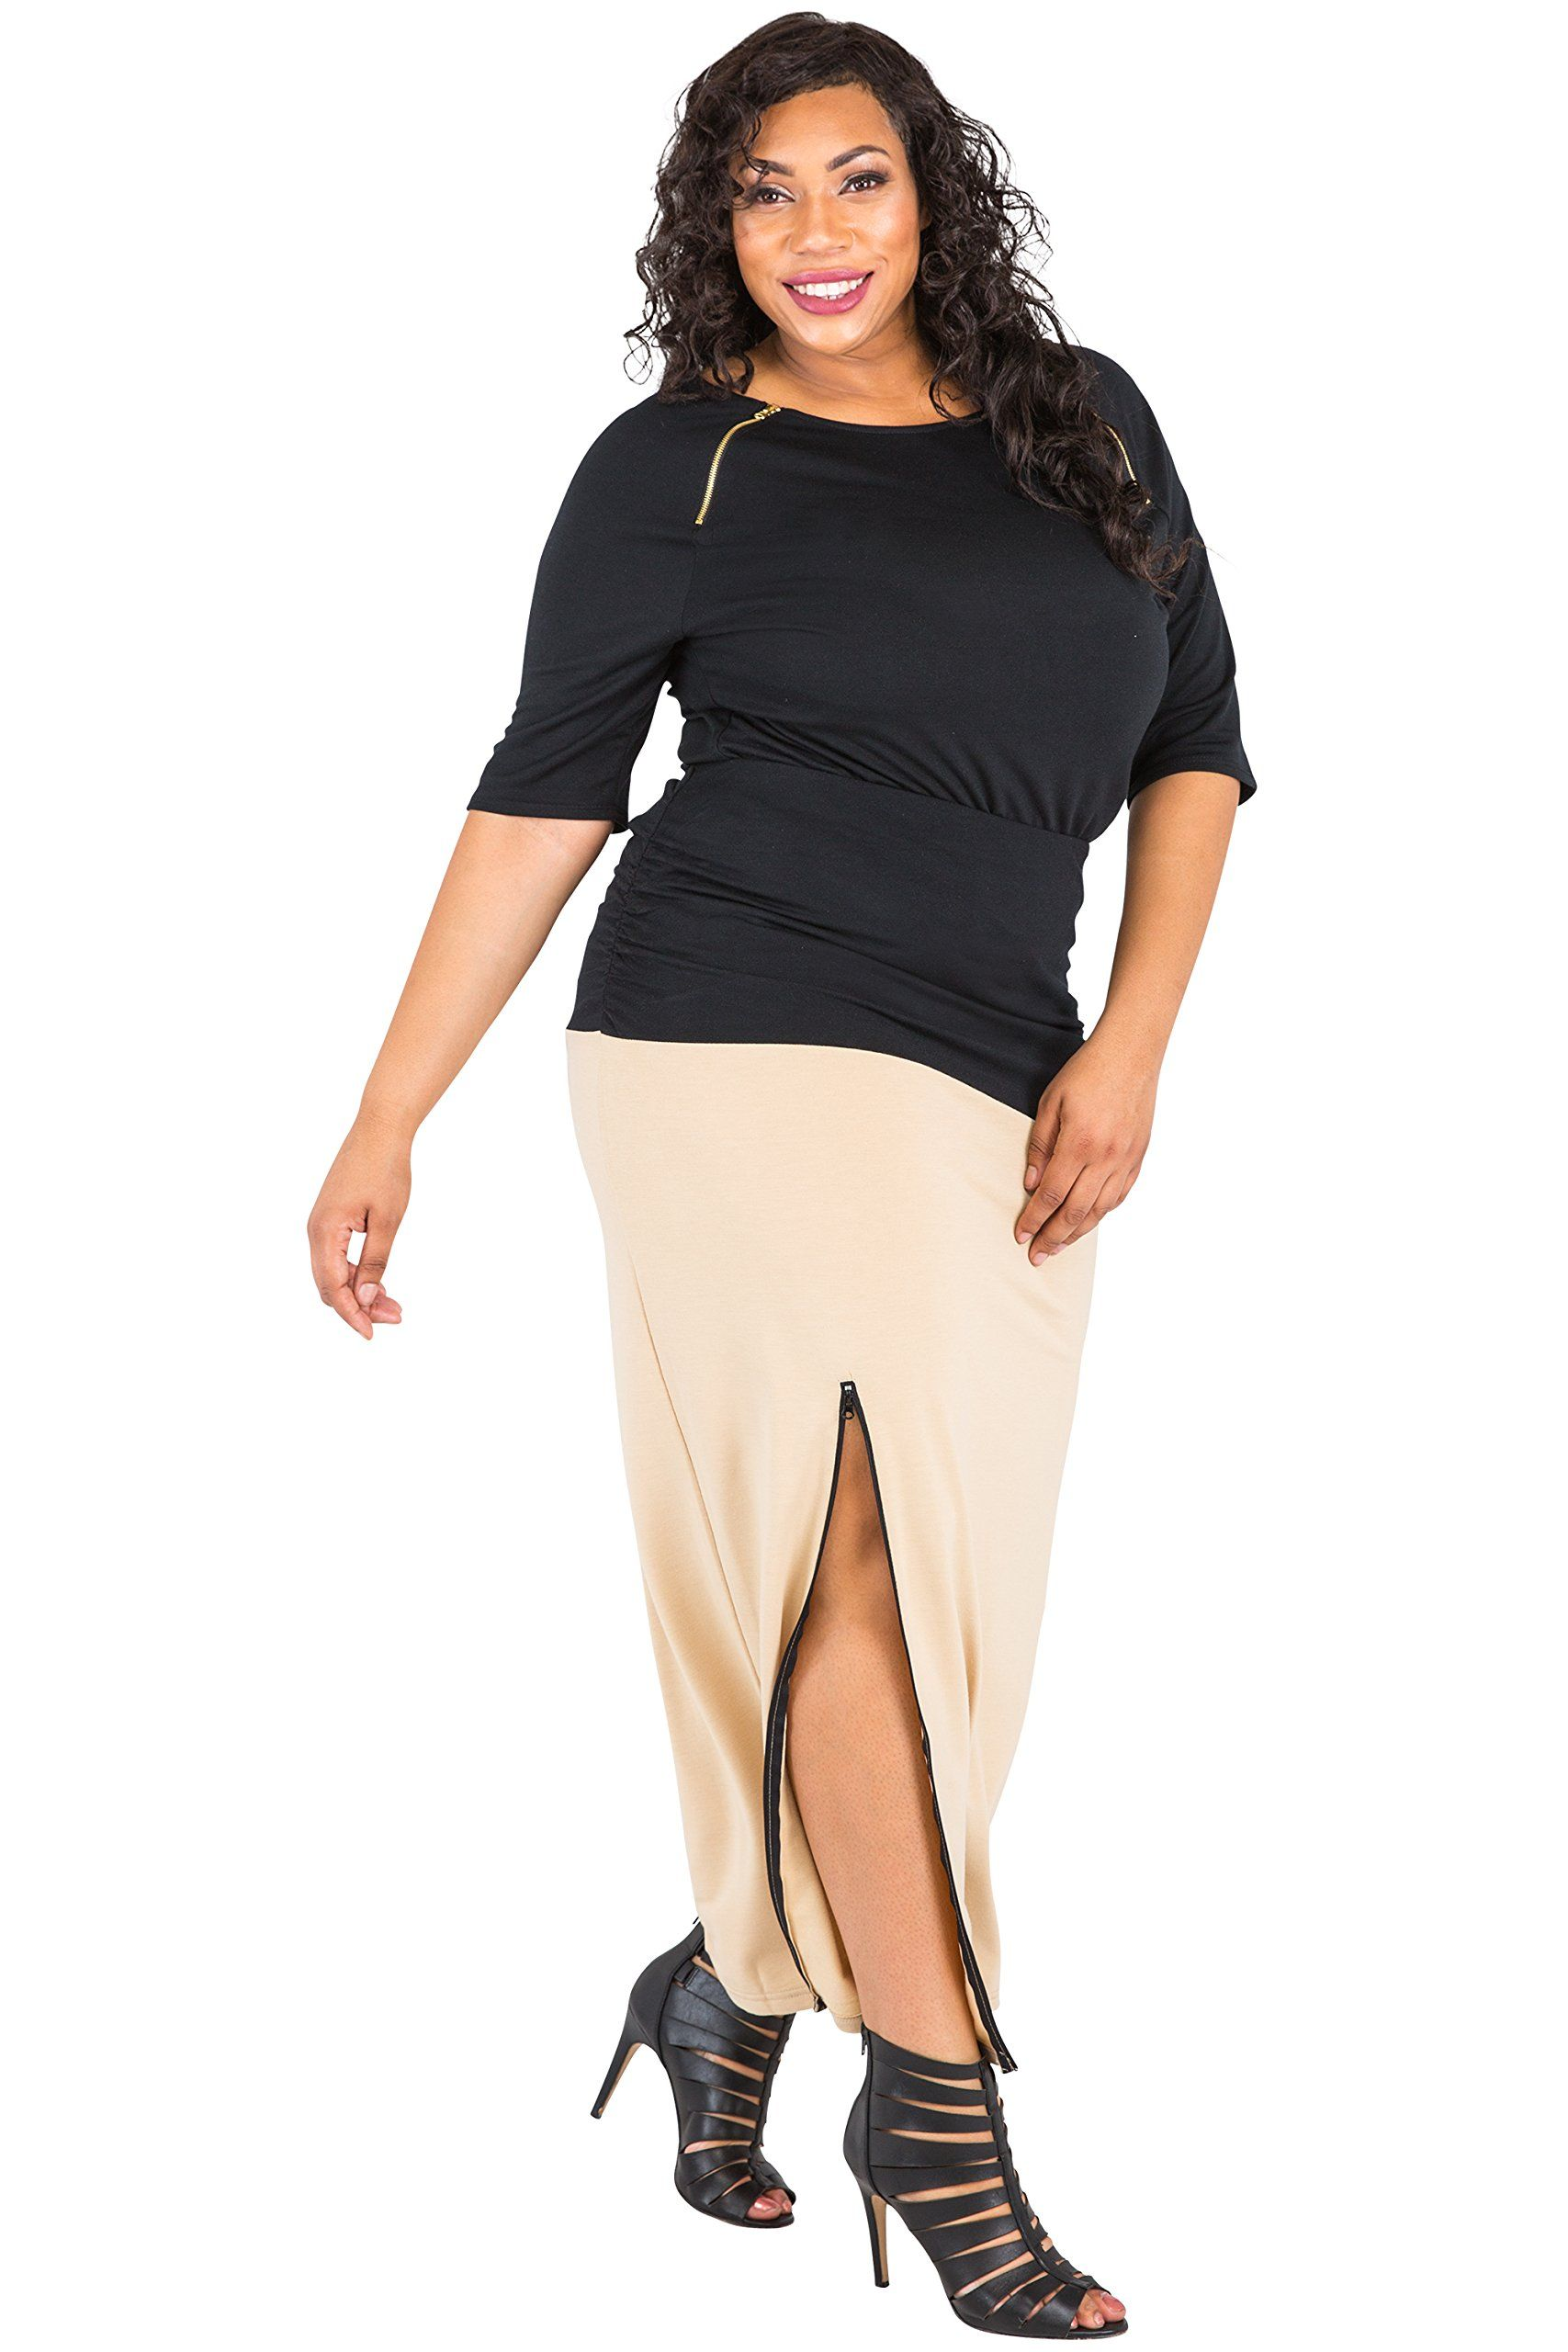 4af23a2373 Poetic Justice Pus Size Womens Curvy Fit Champagne Black Stretch Zip Up  Split Maxi Skirt Size 1X -- Check this amazing product by mosting likely to  the web ...